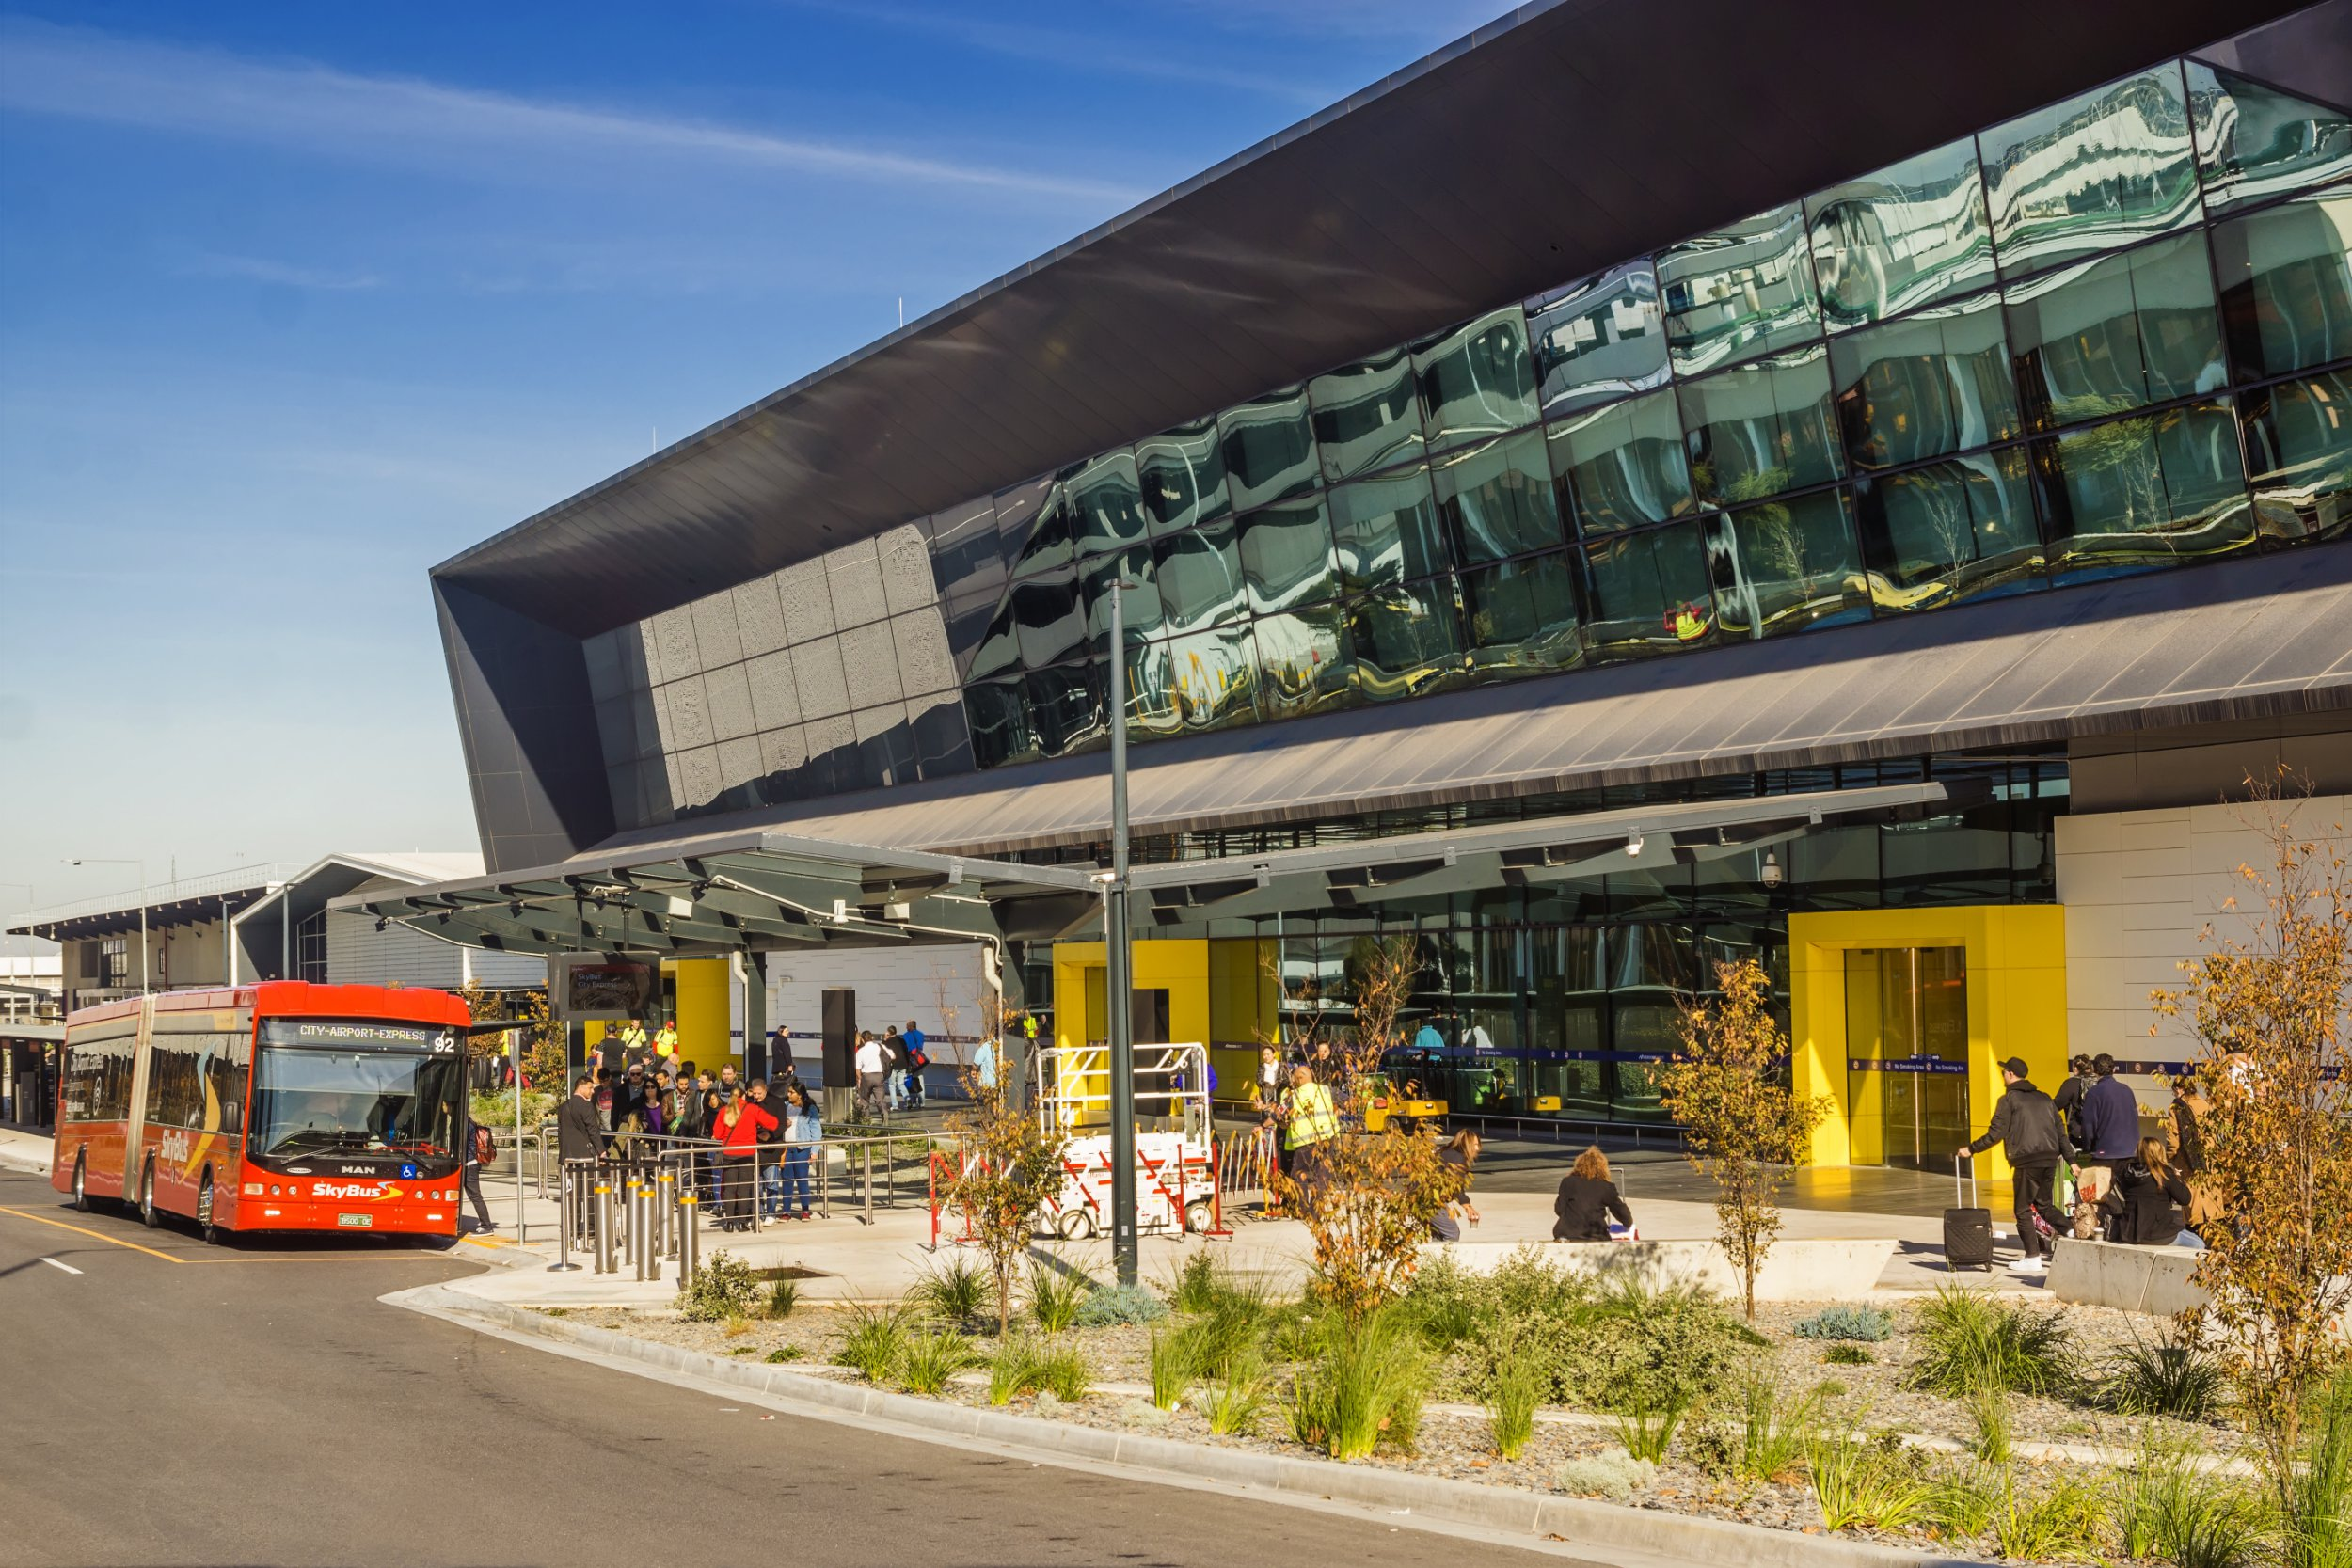 I was trying to rape her but she broke free Melbourne, Australia - June 2, 2016: A SkyBus picks up passengers from Melbourne Airport's new Terminal 4, which caters for domestic flights.